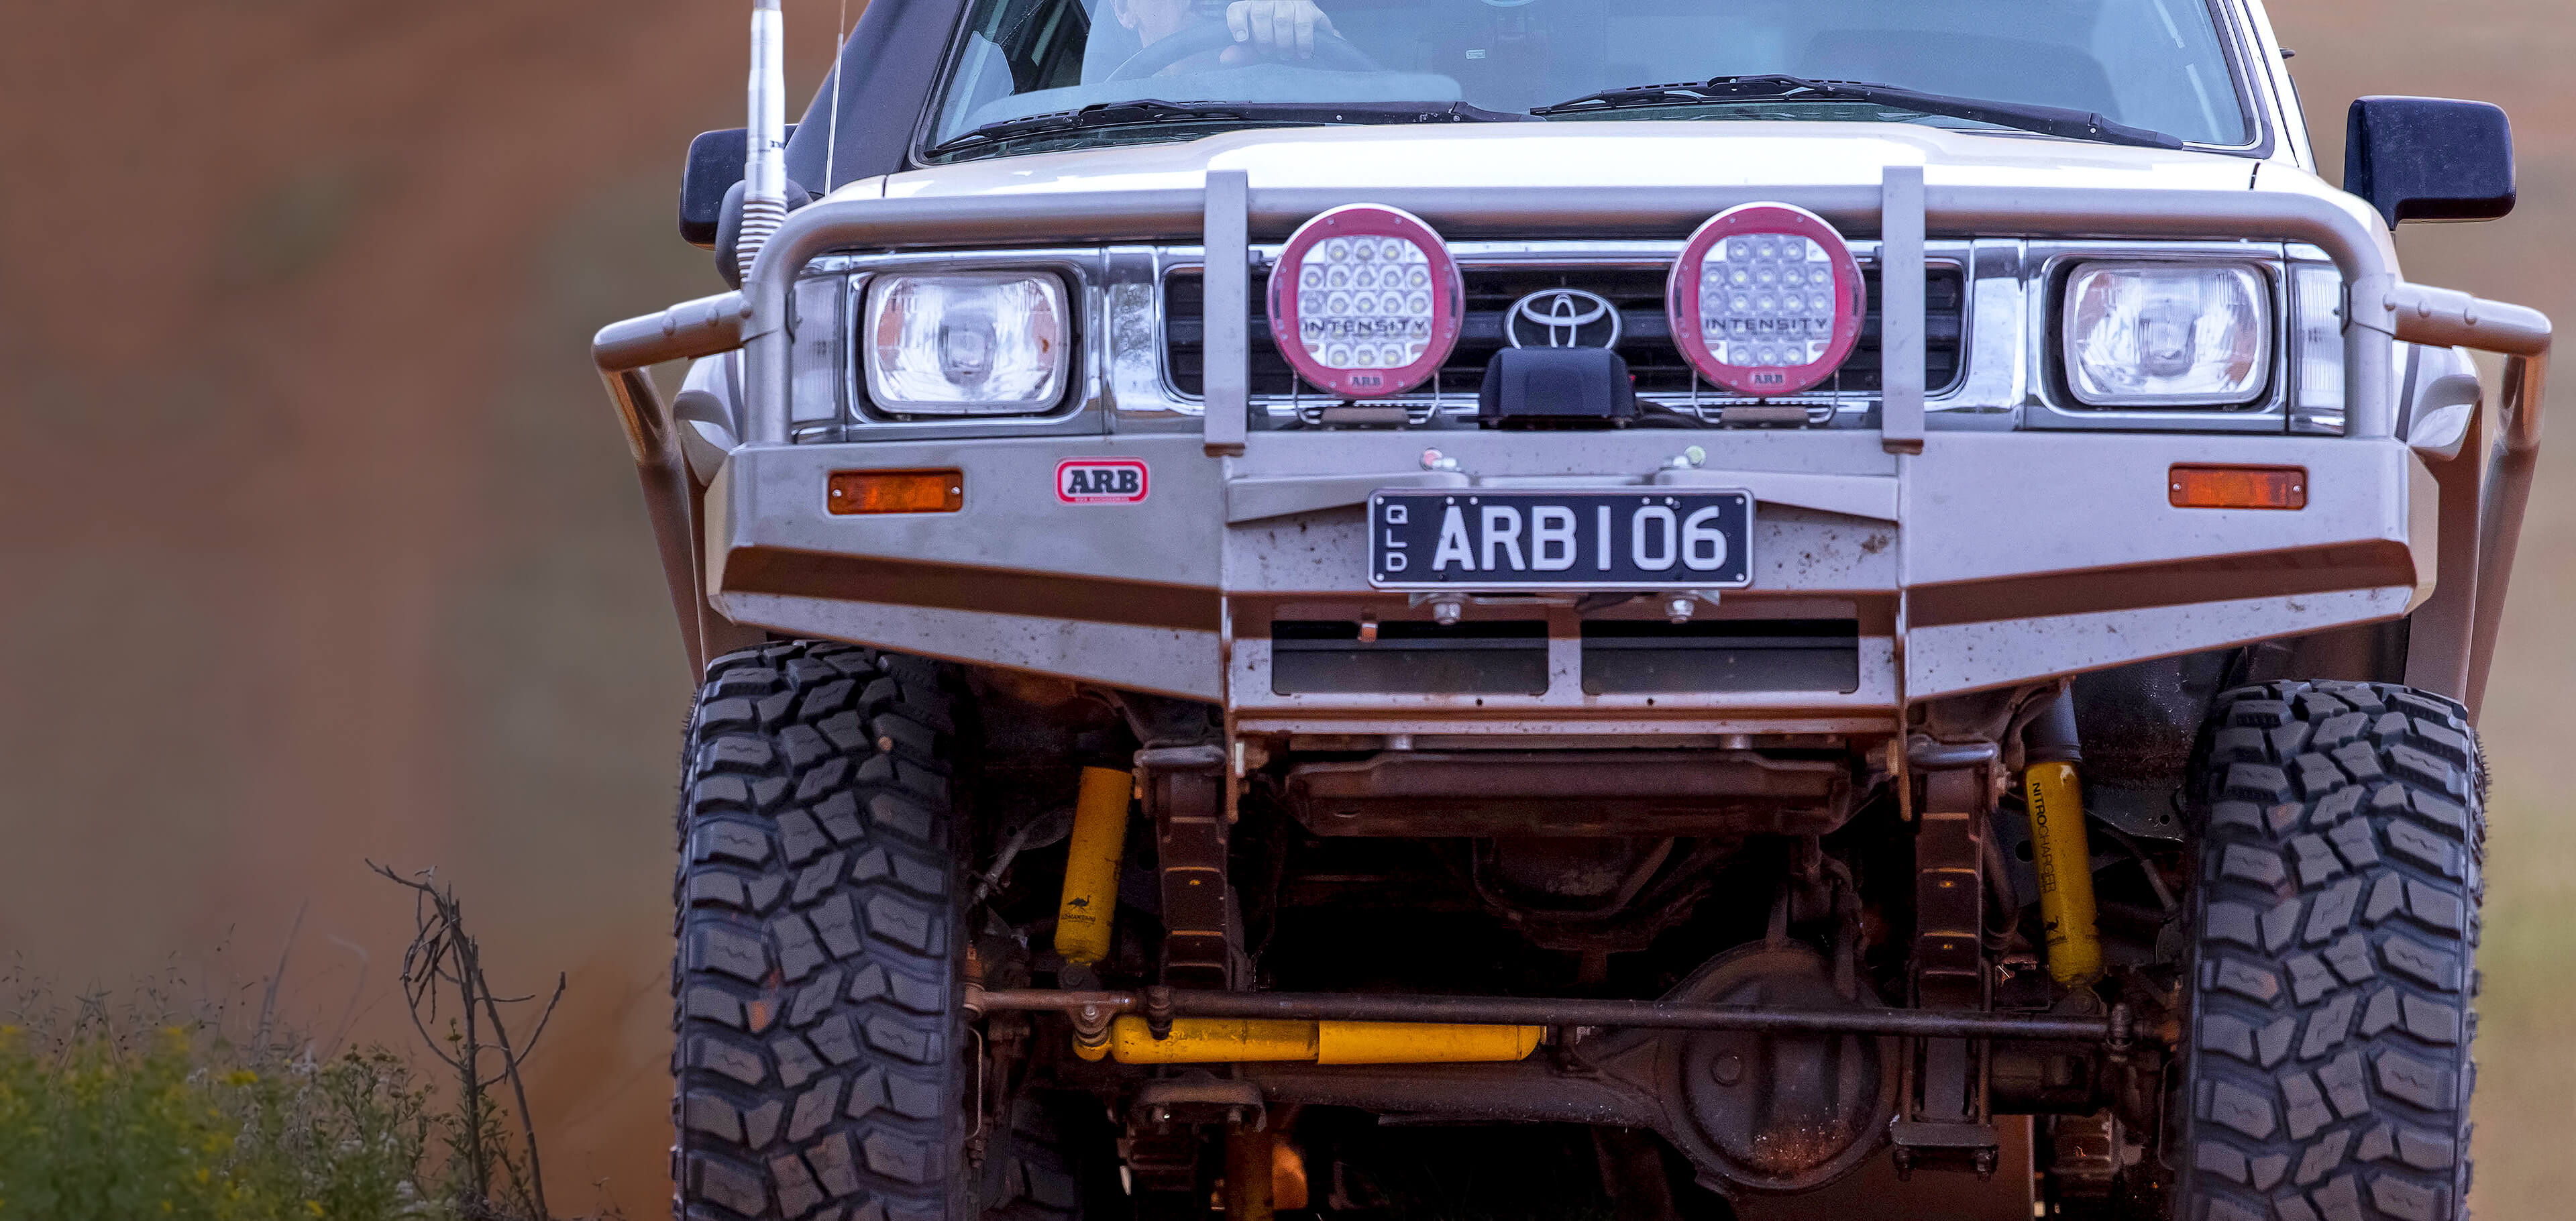 Arb 44 Accessories Old Man Emu 4x4 Suspension Nissan Xtrail Offroad Modified